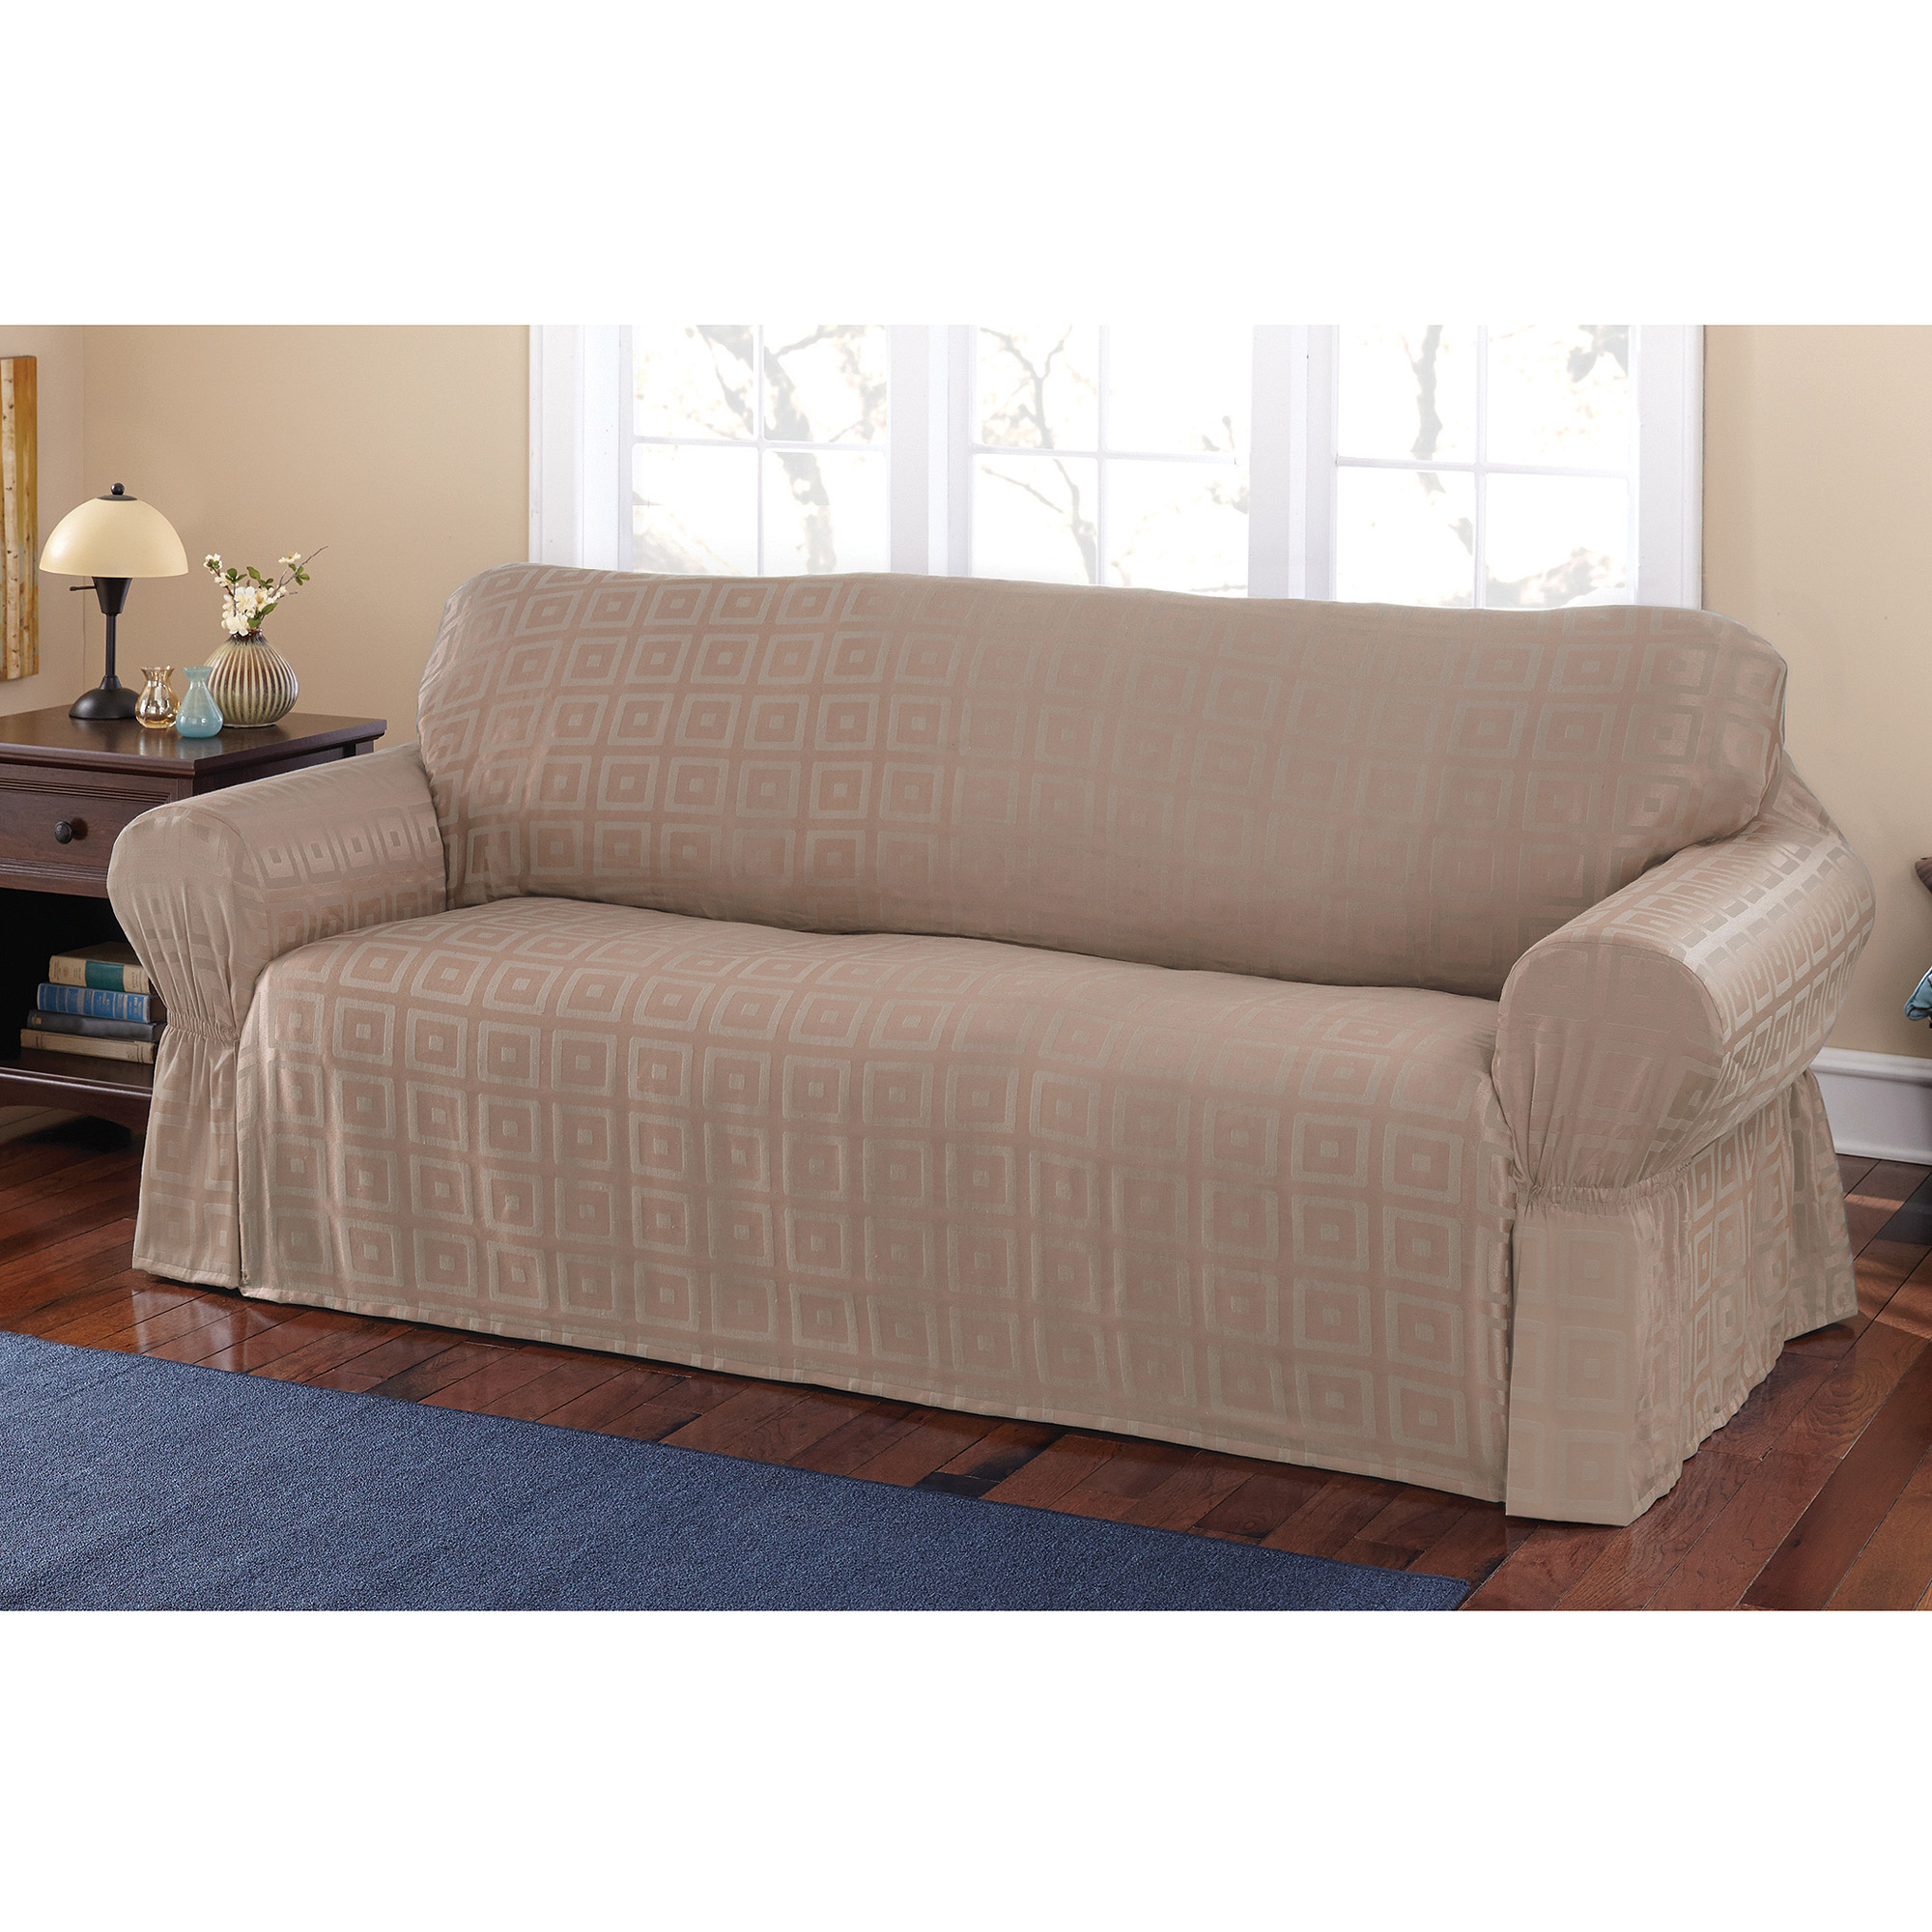 Most Recently Released Chair: Impressive Couches Walmart With Astounding Remark For Awesome With Sofa And Chair Covers (View 9 of 20)